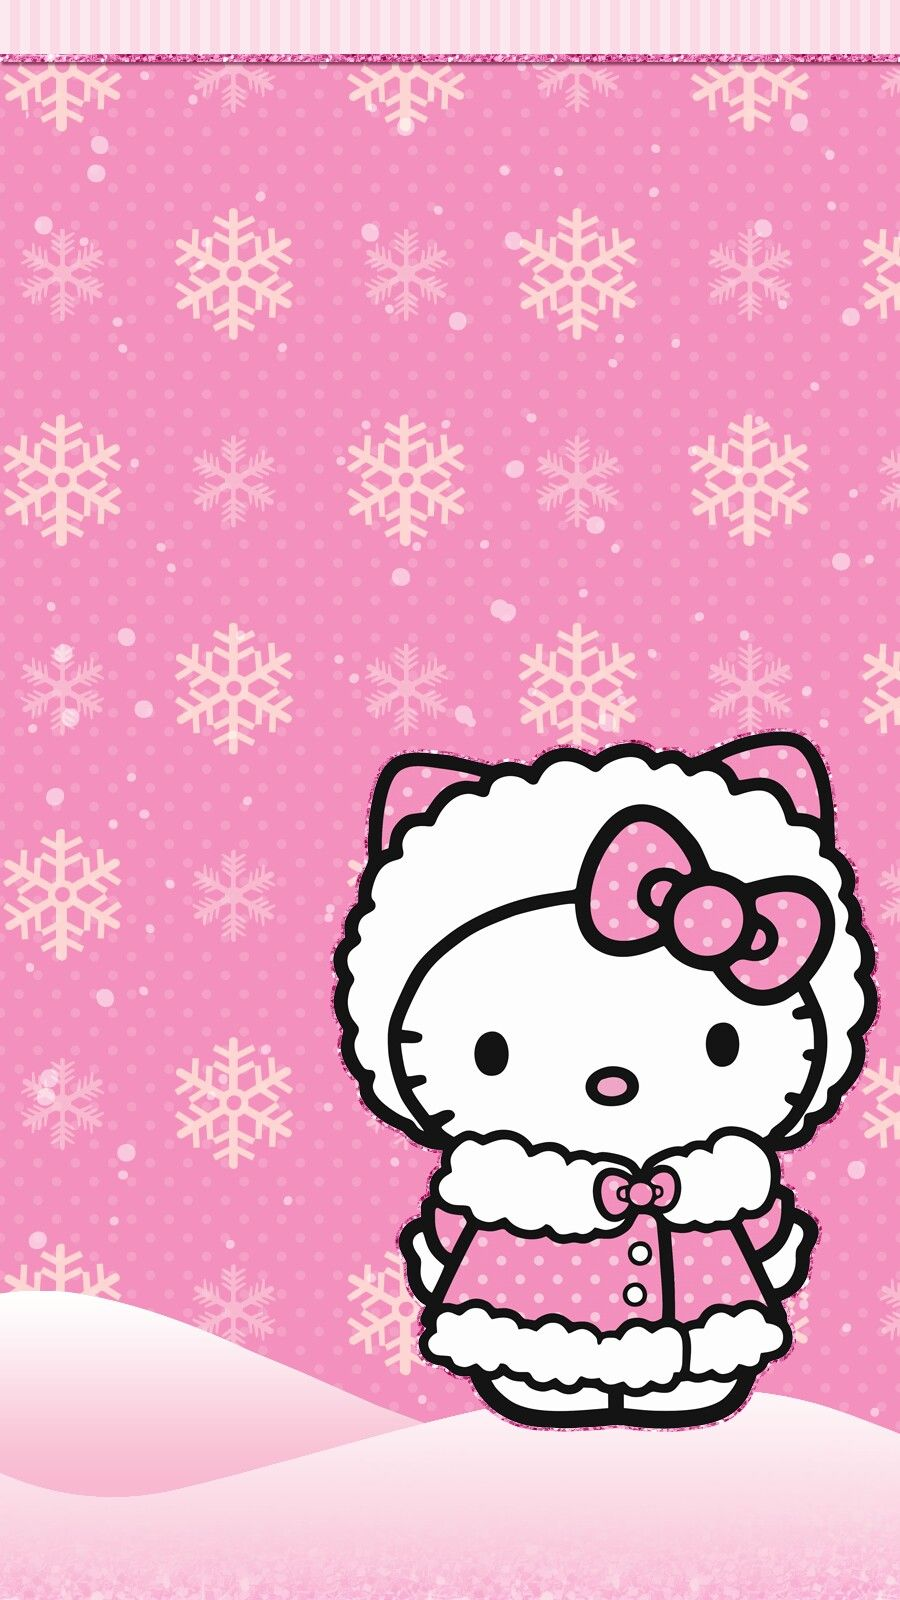 #hello_kitty #winter | Cute walls by me♡ | Hello kitty ...